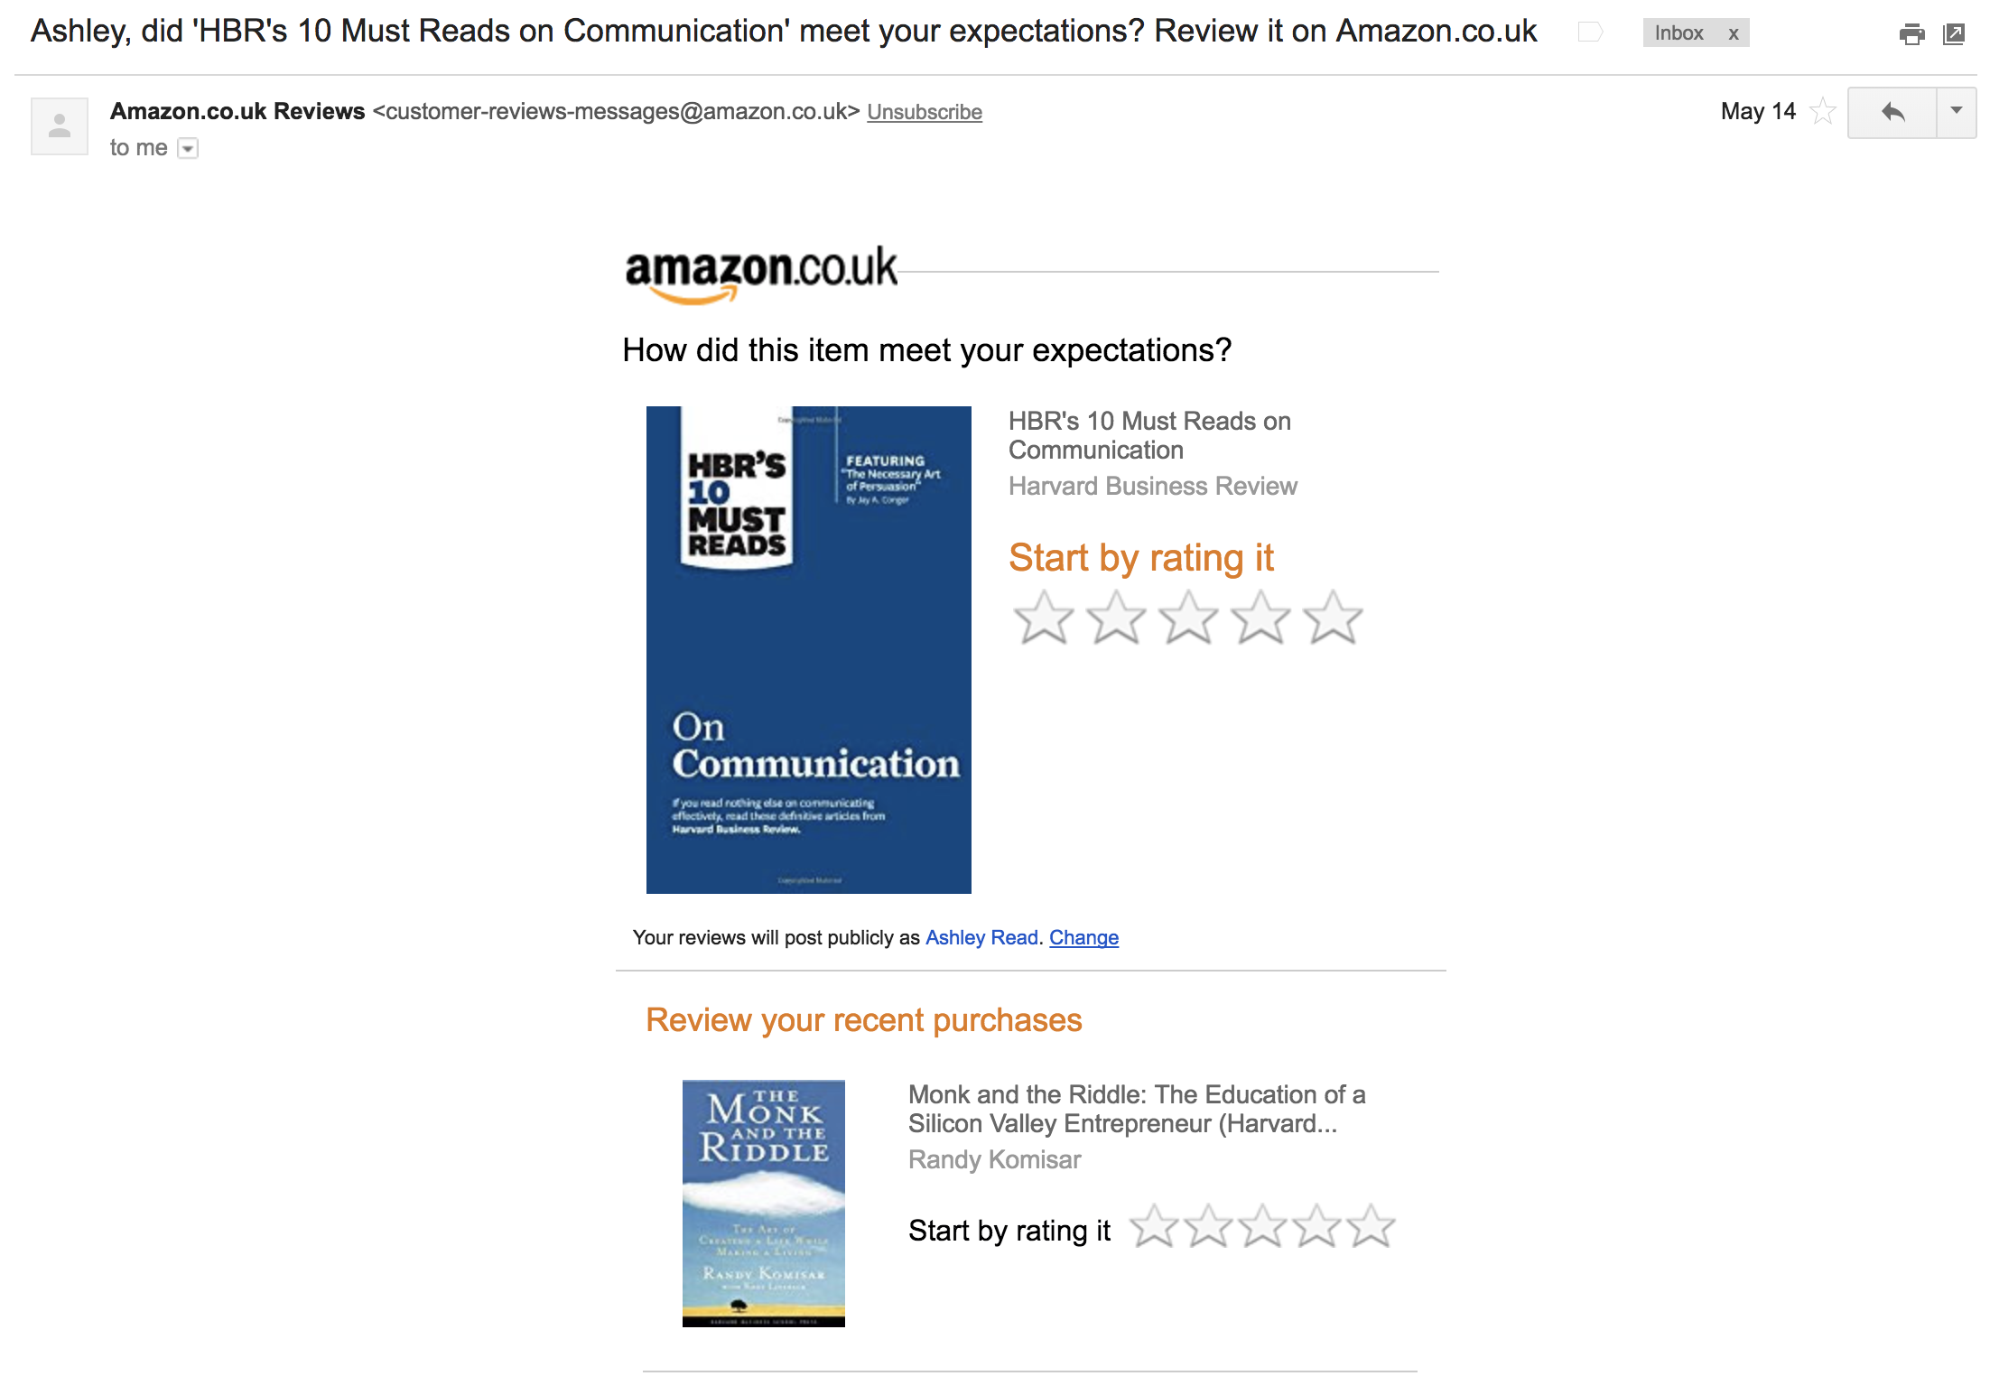 Screenshot showing an email by amazon.co.uk